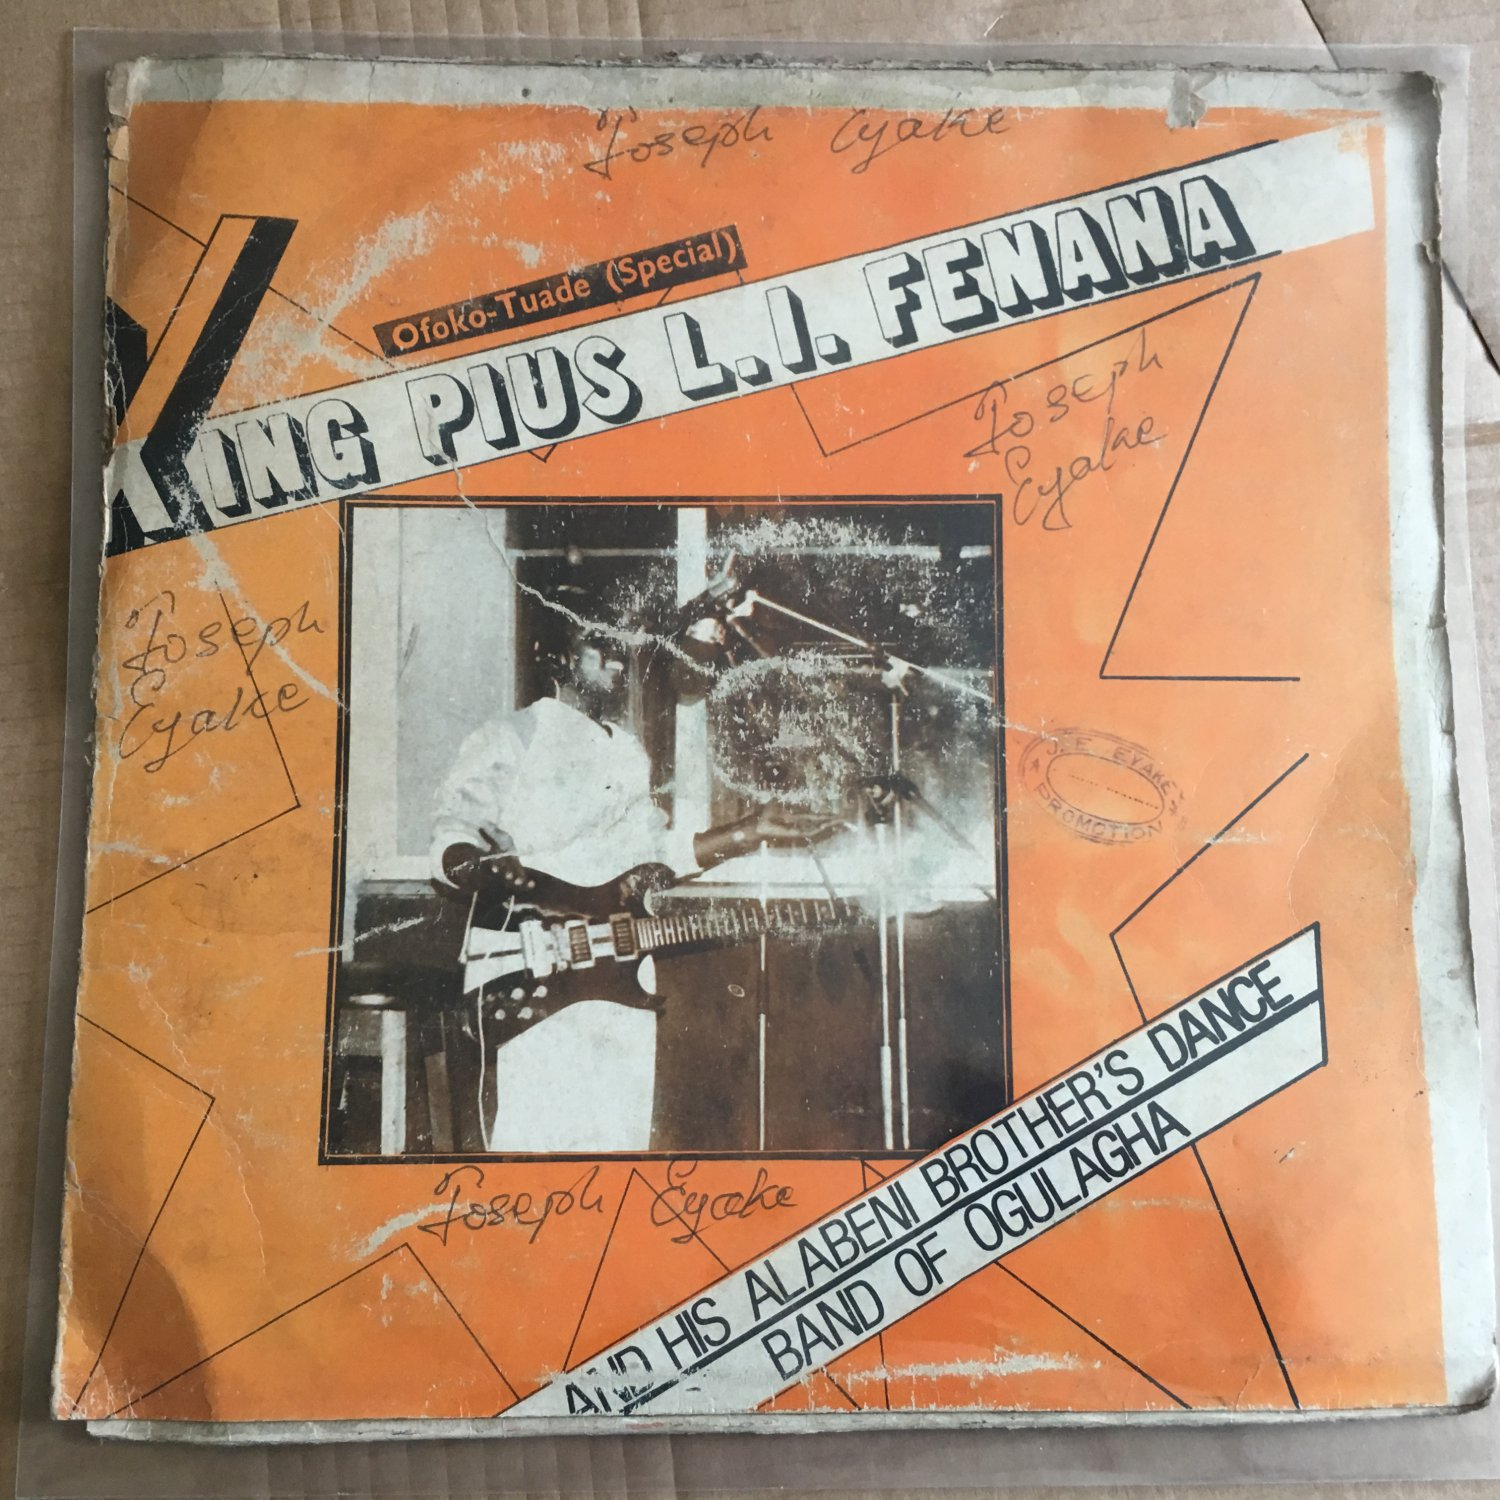 PRINCE DCK LAGOS & HIS REF. BAND LP tolomone ogbo special NIGERIA HIGHLIFE mp3 LISTEN